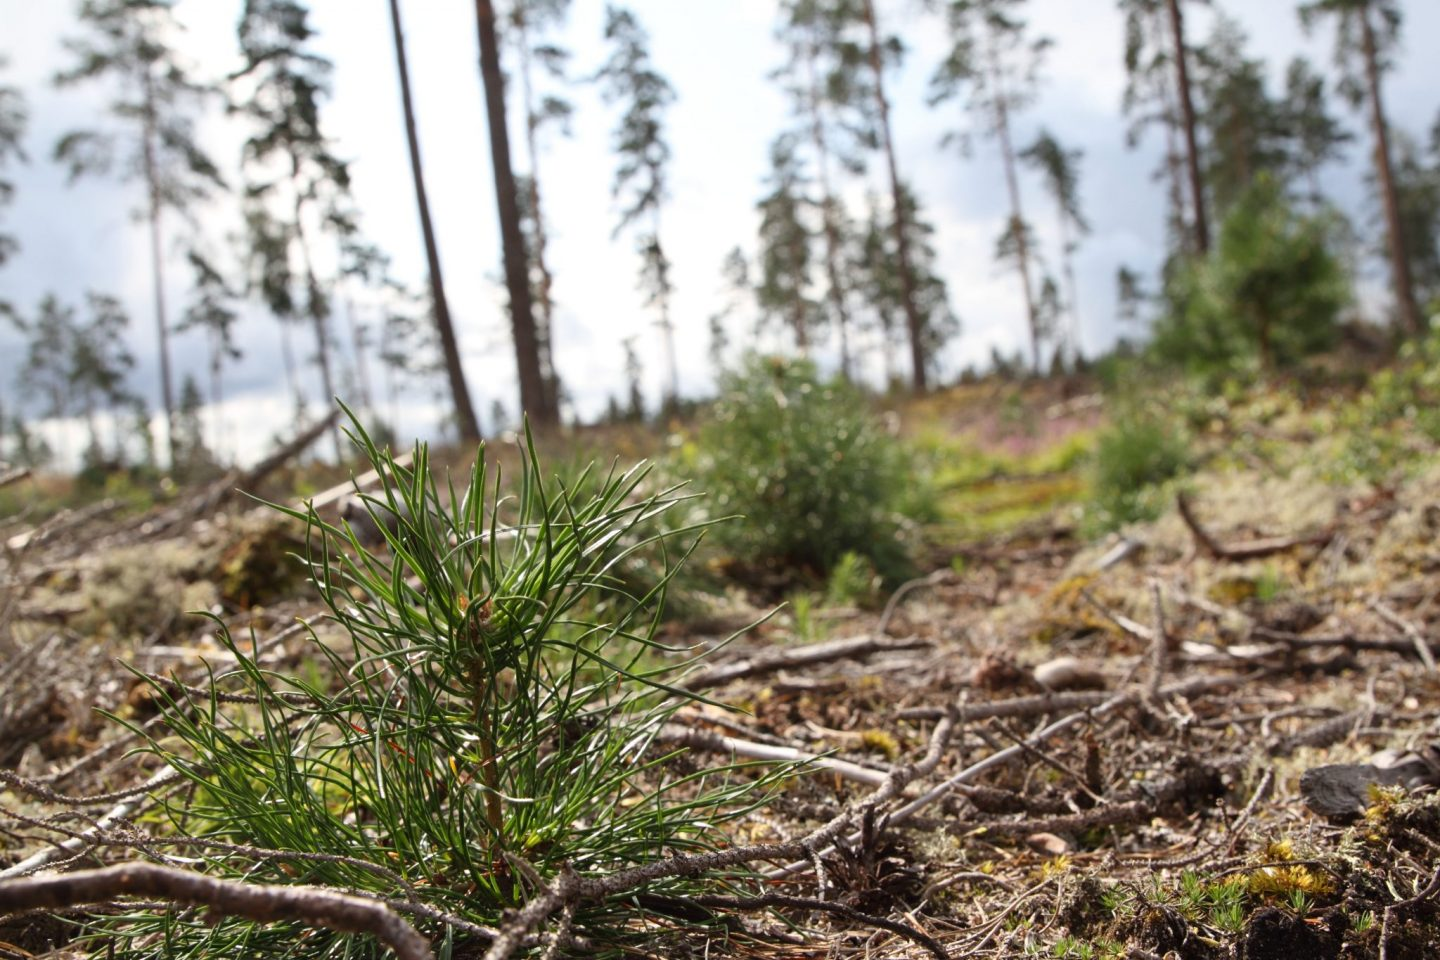 Sowing the forest – A good alternative?